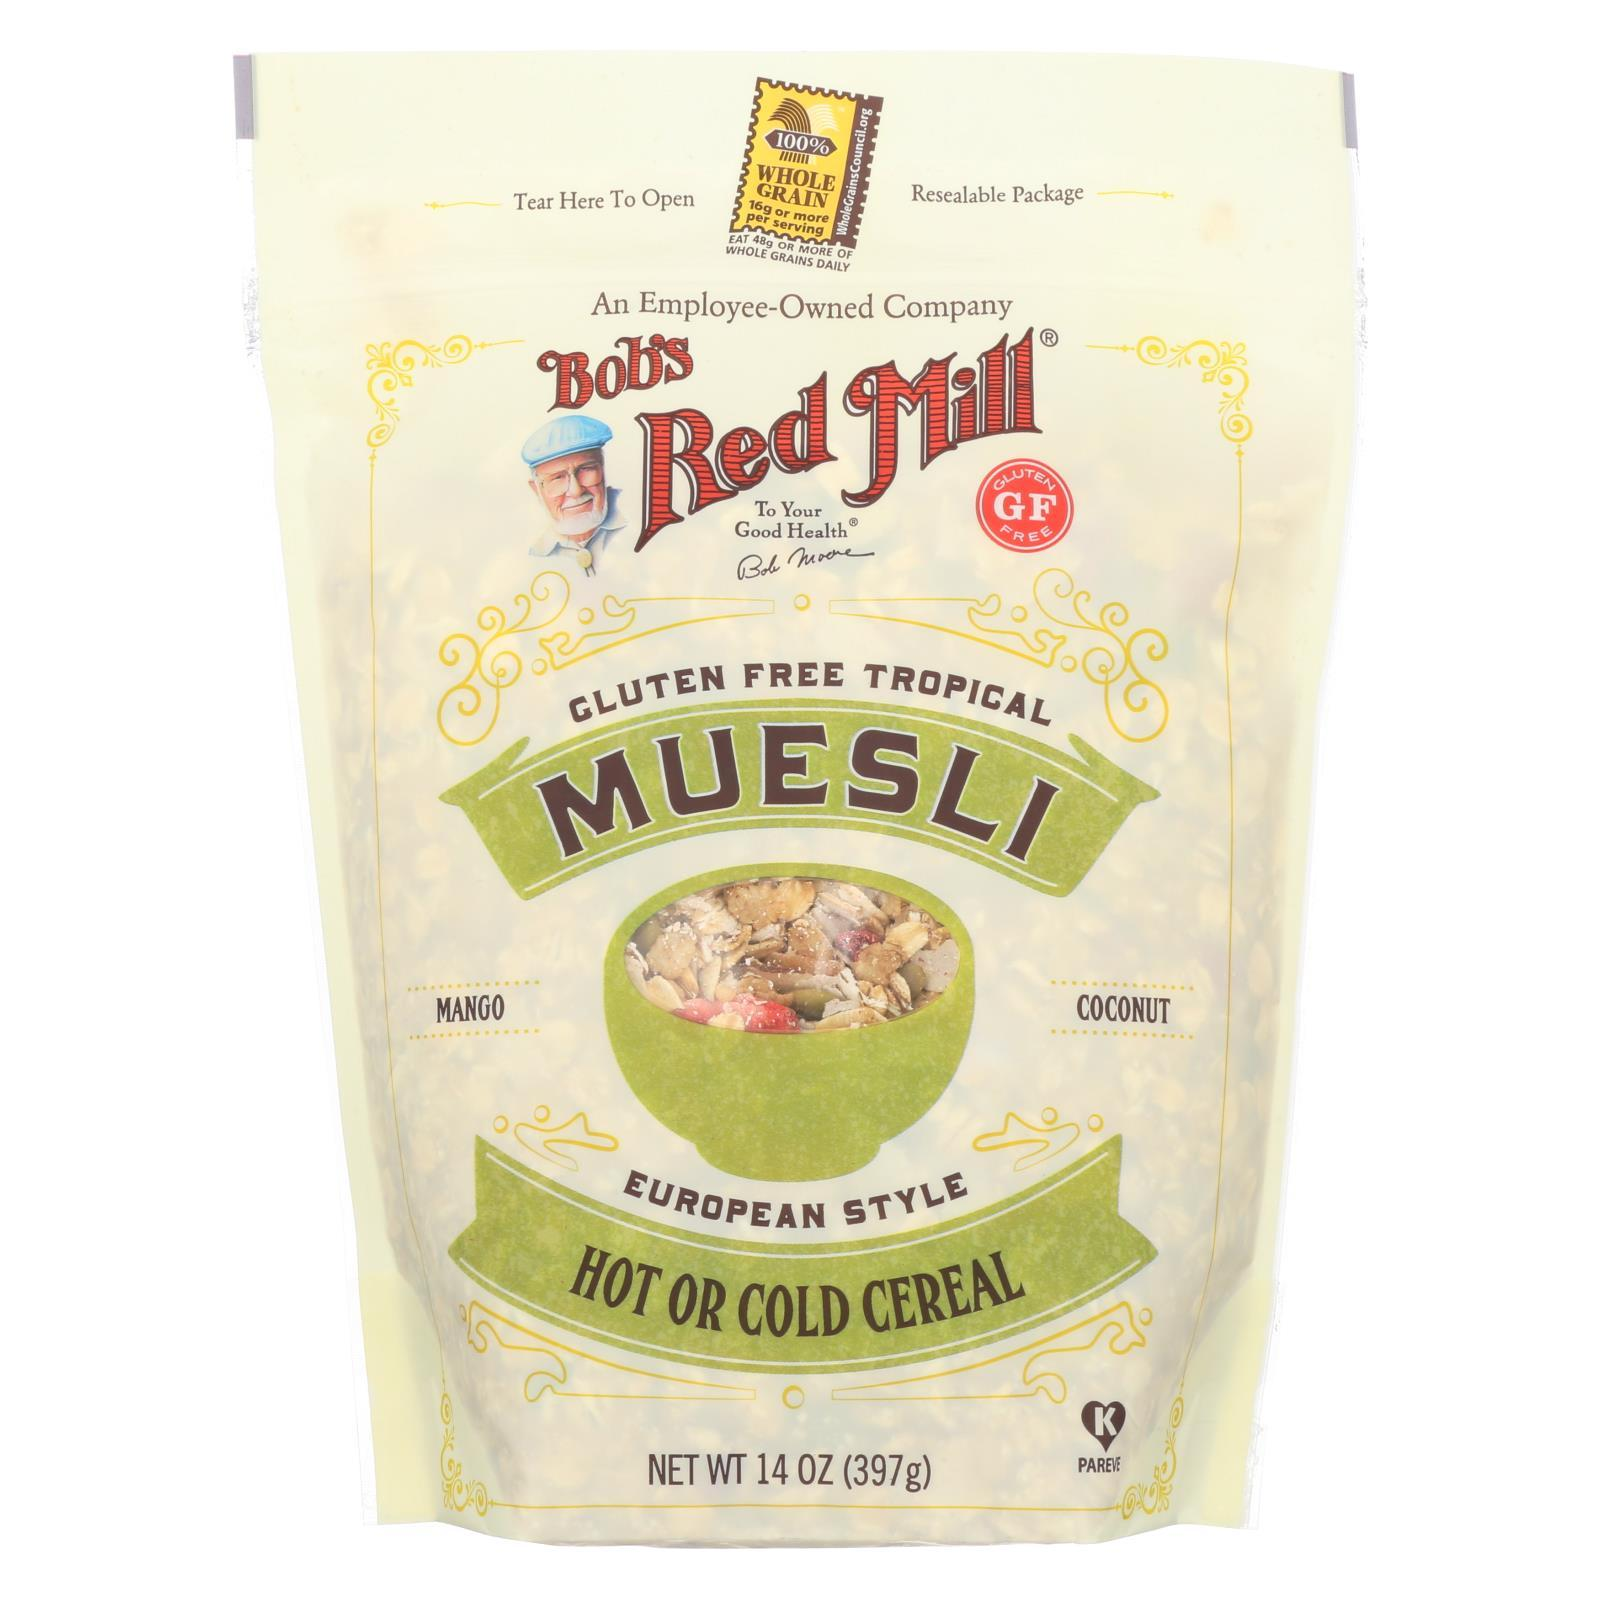 Cereal - Gluten Free Tropical Muesli ( 4 - 14 OZ )